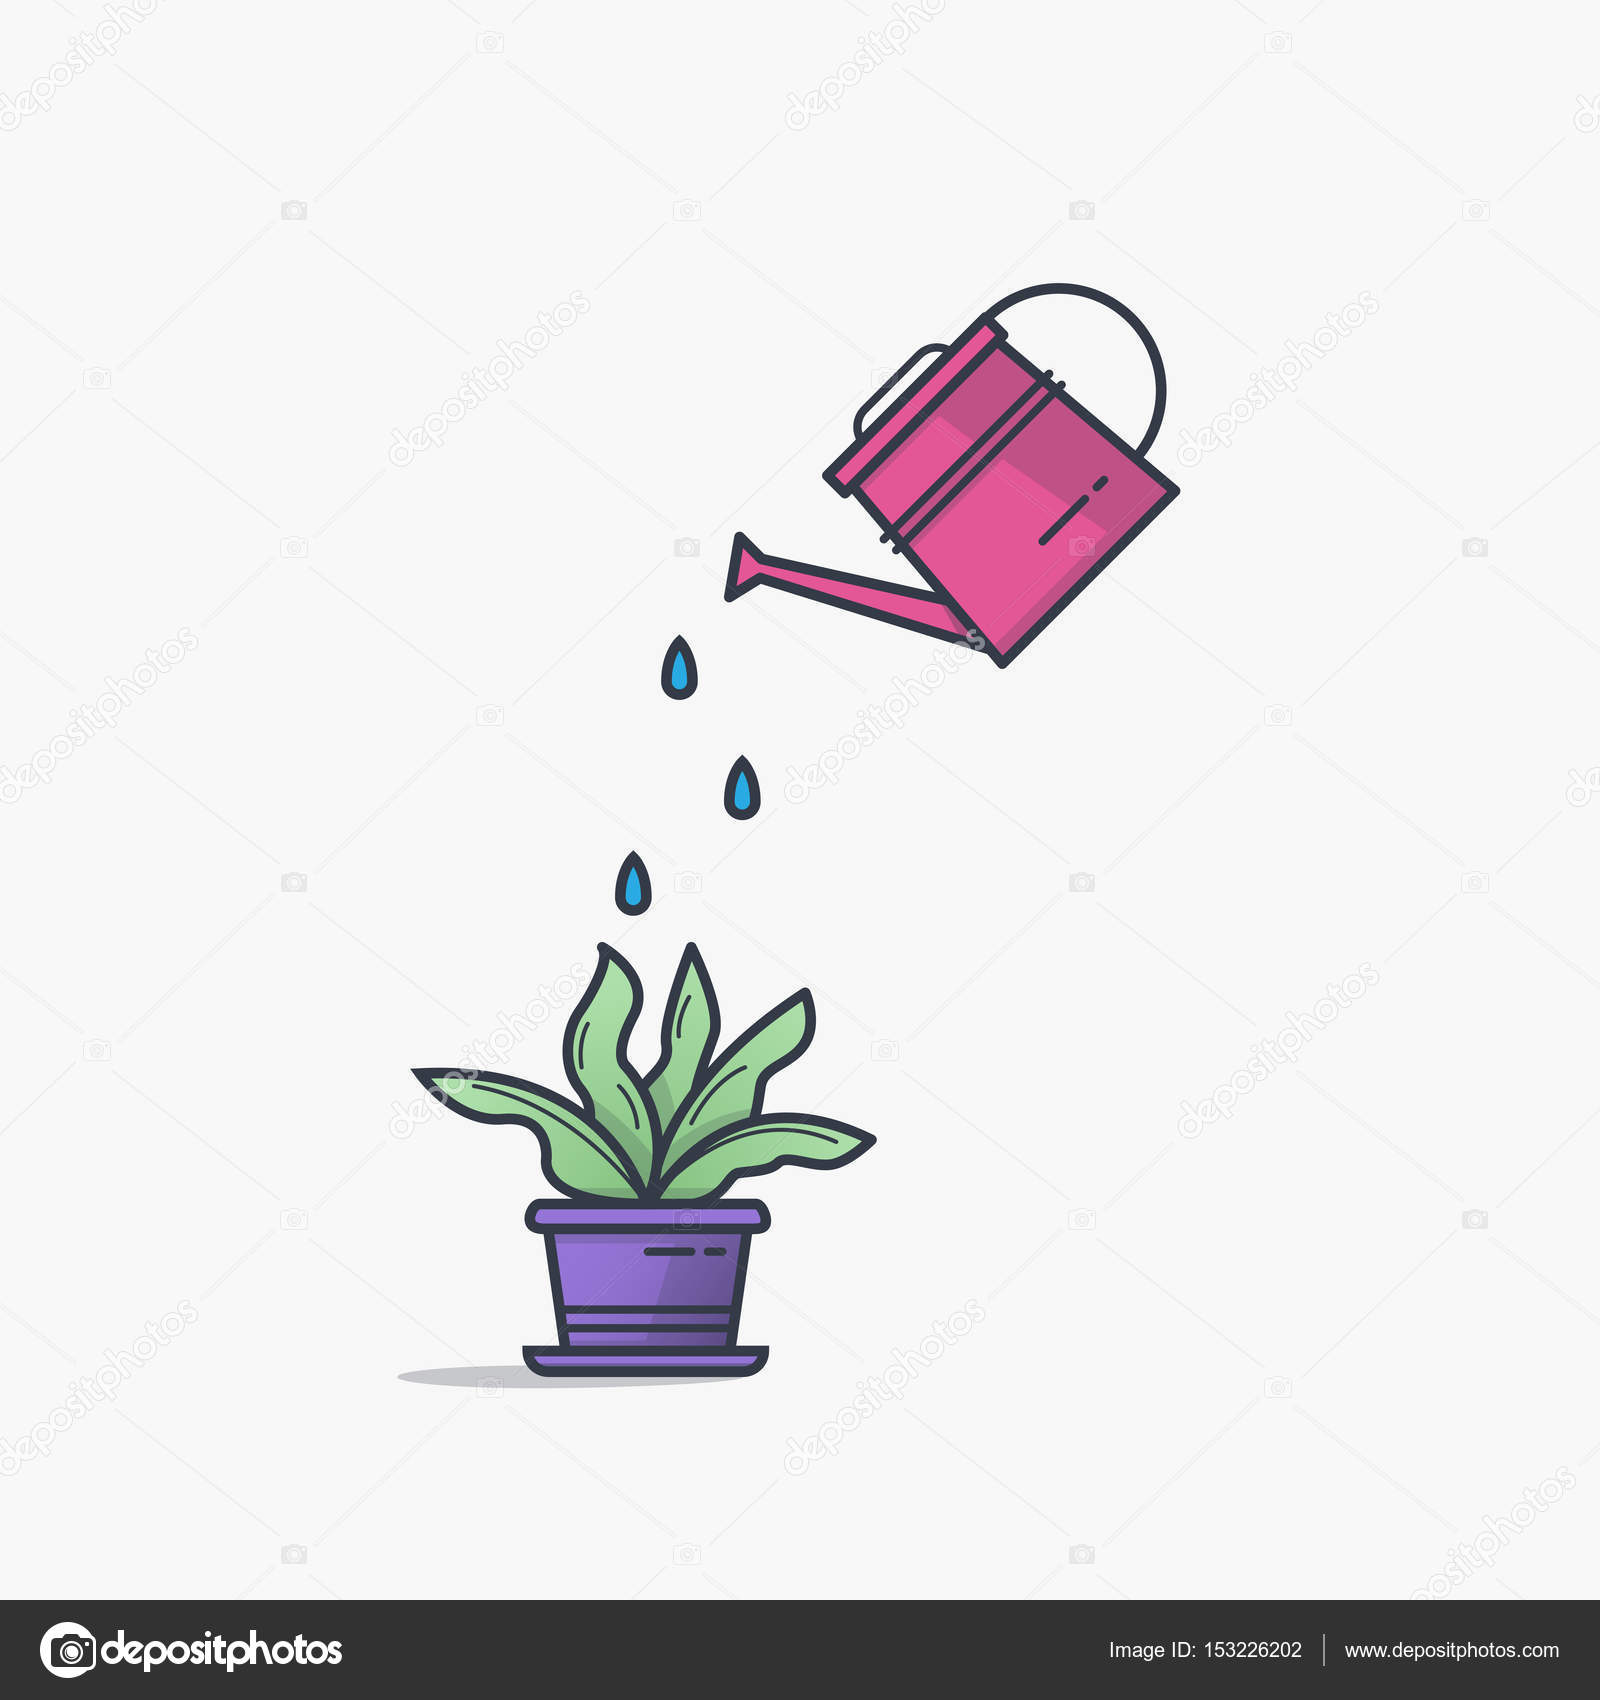 Watering can and flower pot stock vector ikonstudios 153226202 watering can and flower pot stock vector ccuart Choice Image